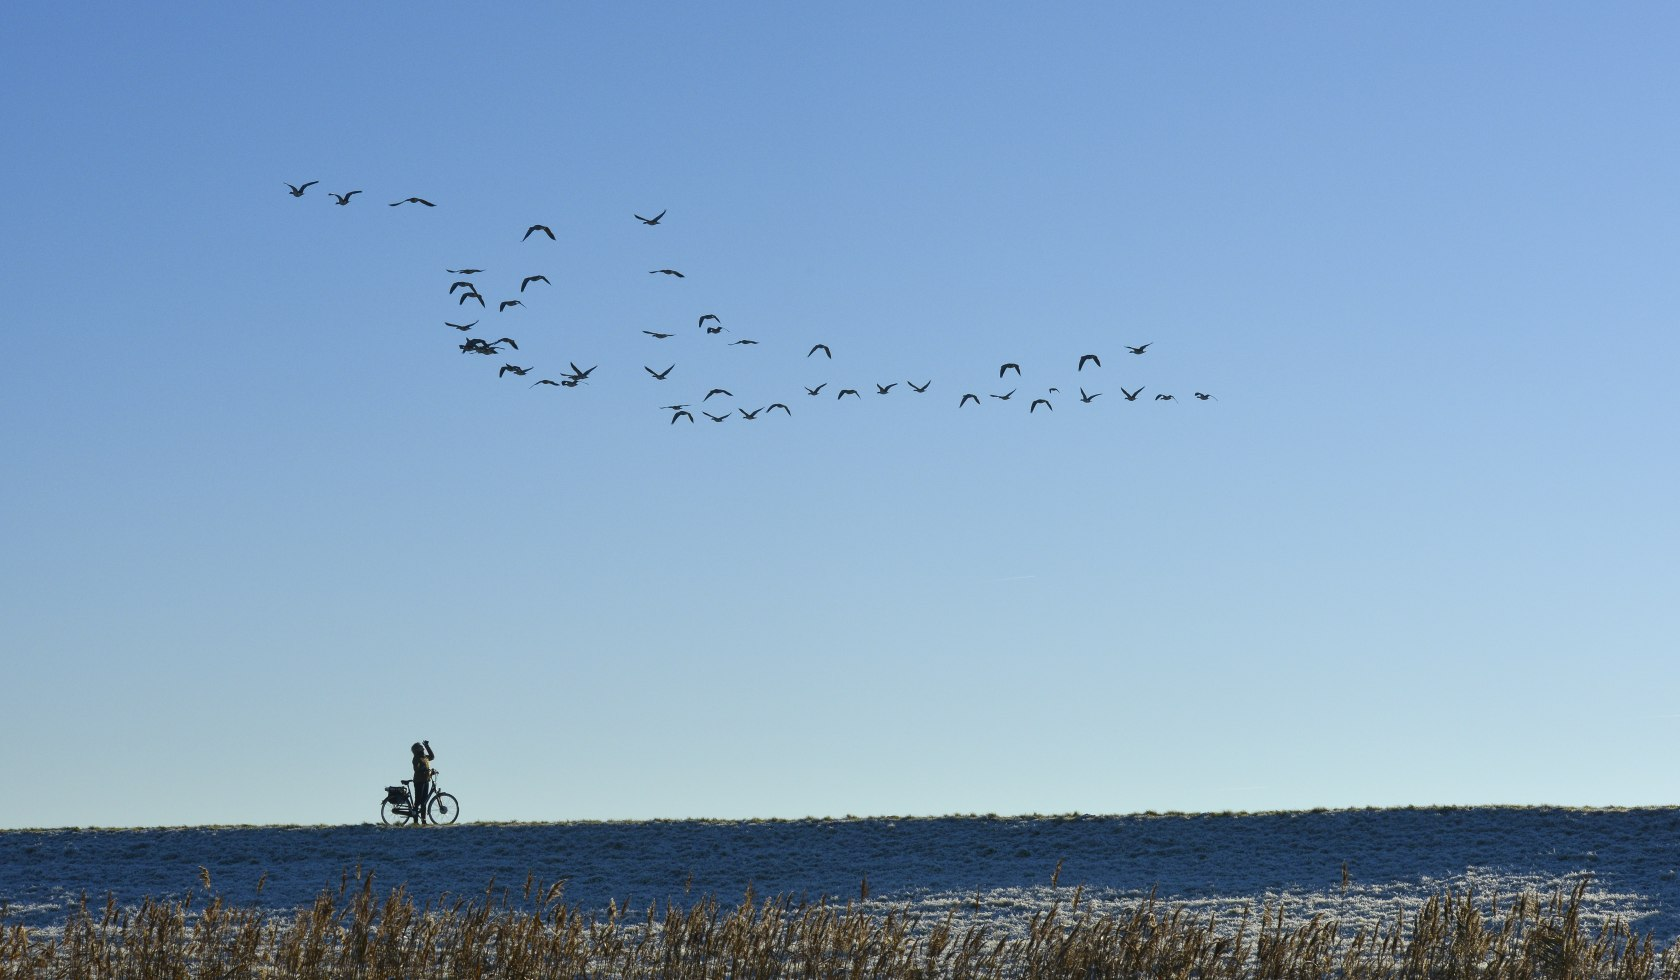 Wild geese at East Frisia